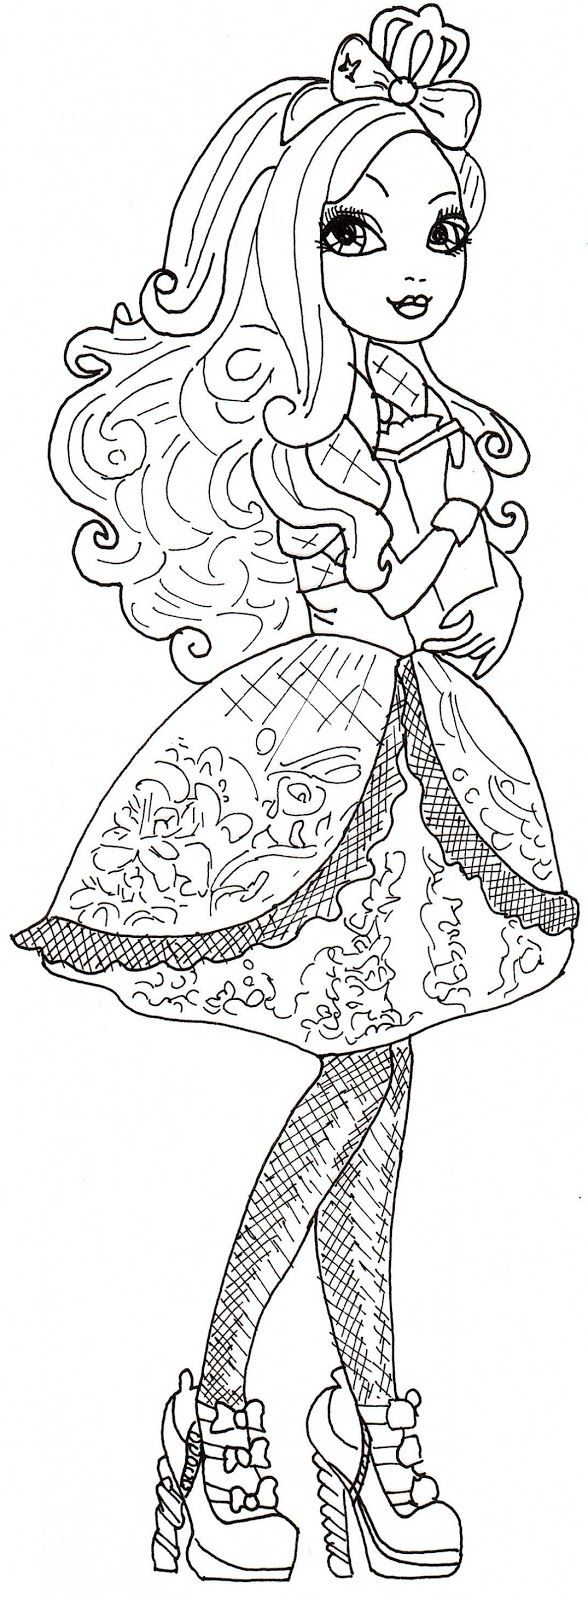 Anti stress colouring book asda - Apple White Coloring Sheet Png 588 1600